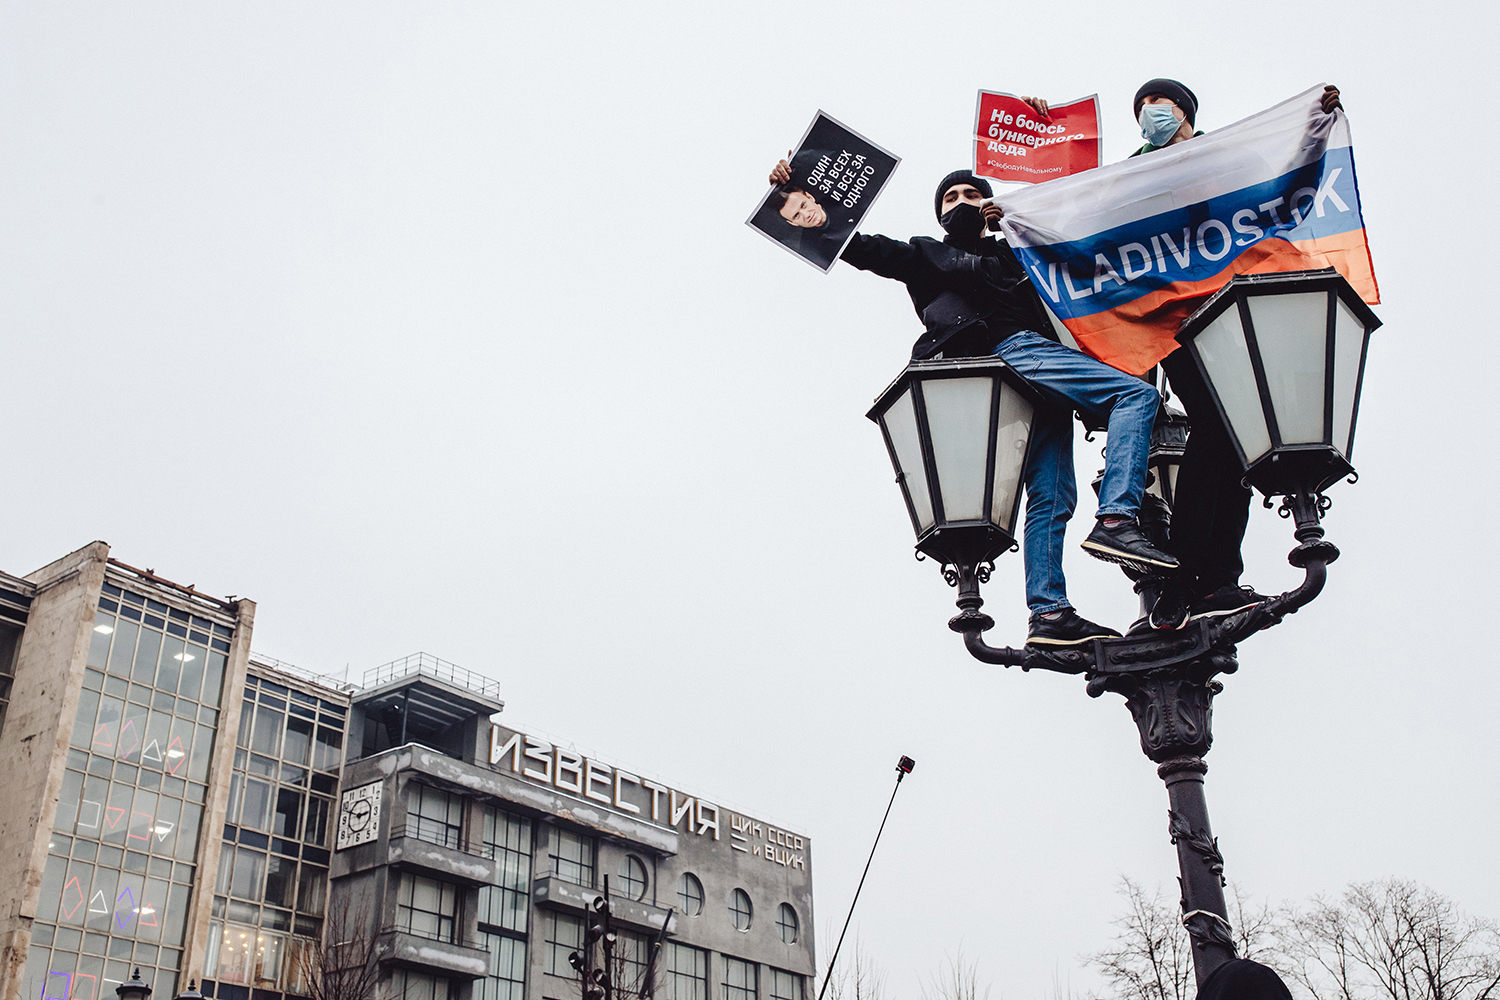 Protesters hold banners at the top of a lamppost at Pushkin Square in Moscow on Jan. 23. Earlier in the week, Kremlin-critic Alexei Navalny called for supporters to protest his arrest and pre-trial detention, which came one day after his return to Russia following his poisoning with a nerve agent last summer. Getty Images